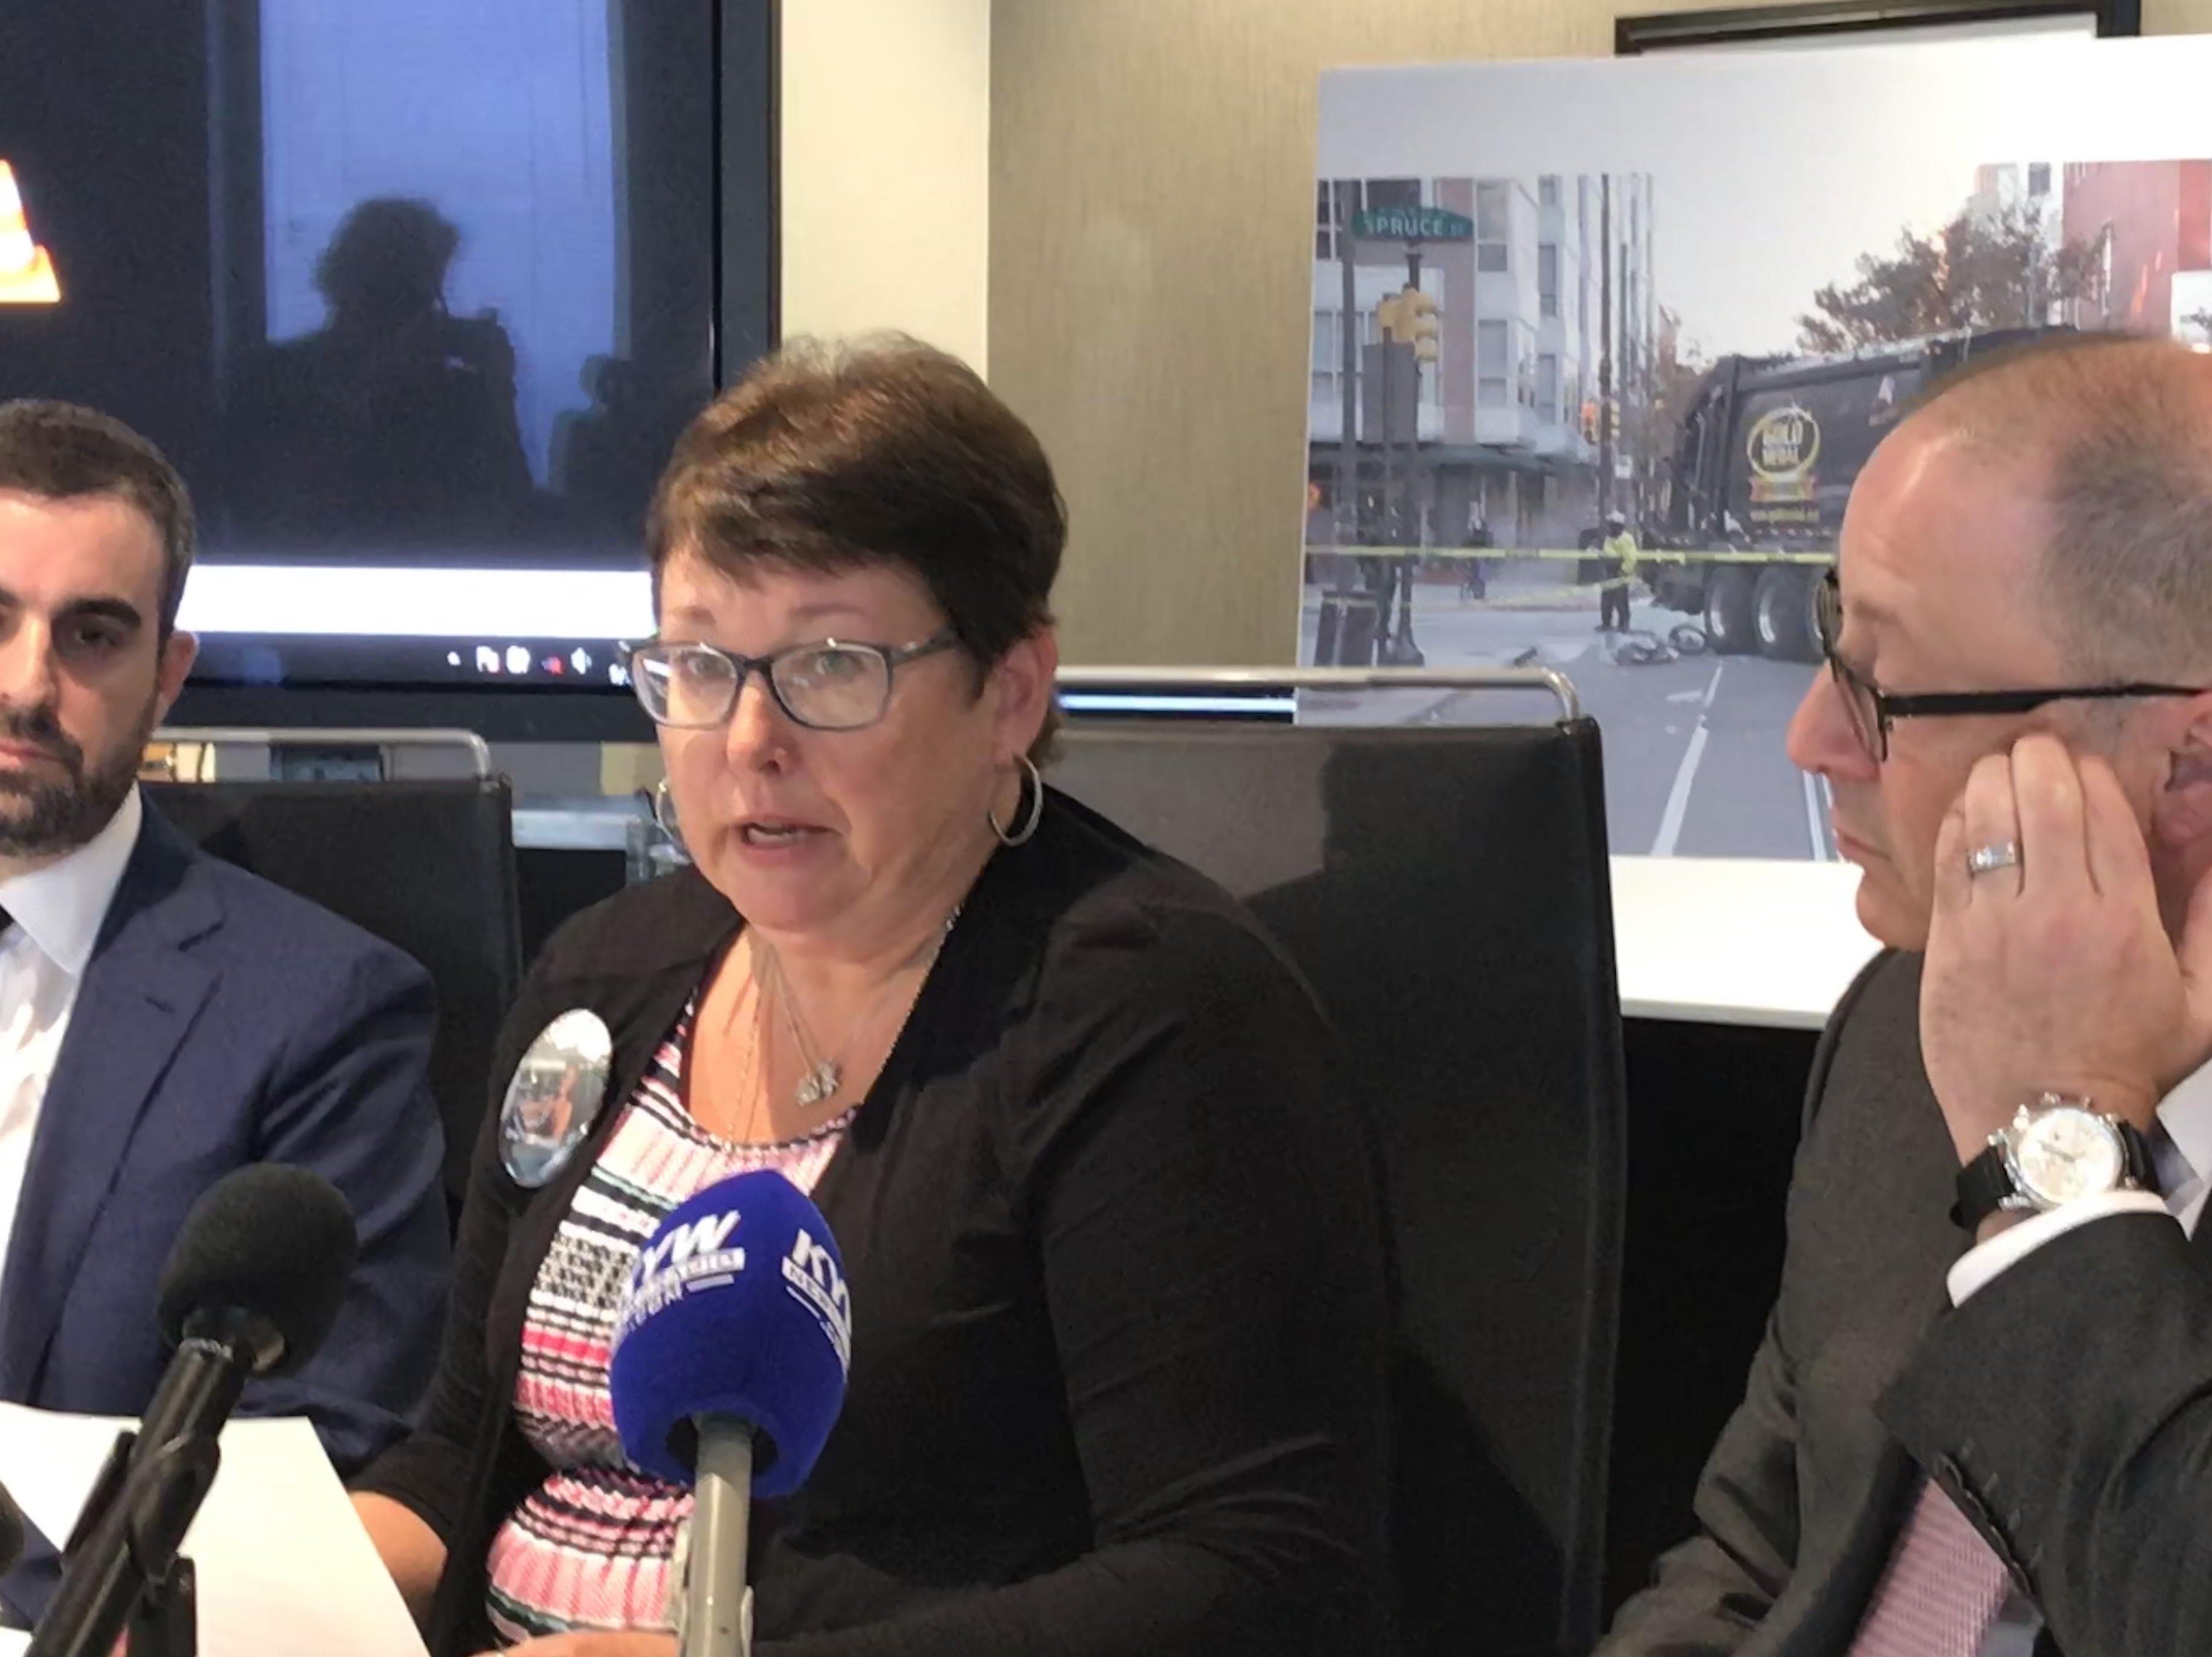 Laura Fredricks, mother of a bicyclist killed last year, Emily Fredricks, speaks to reporters Thursday while flanked by her lawyers Robert Zimmerman (L) and Larry Bendesky (R).